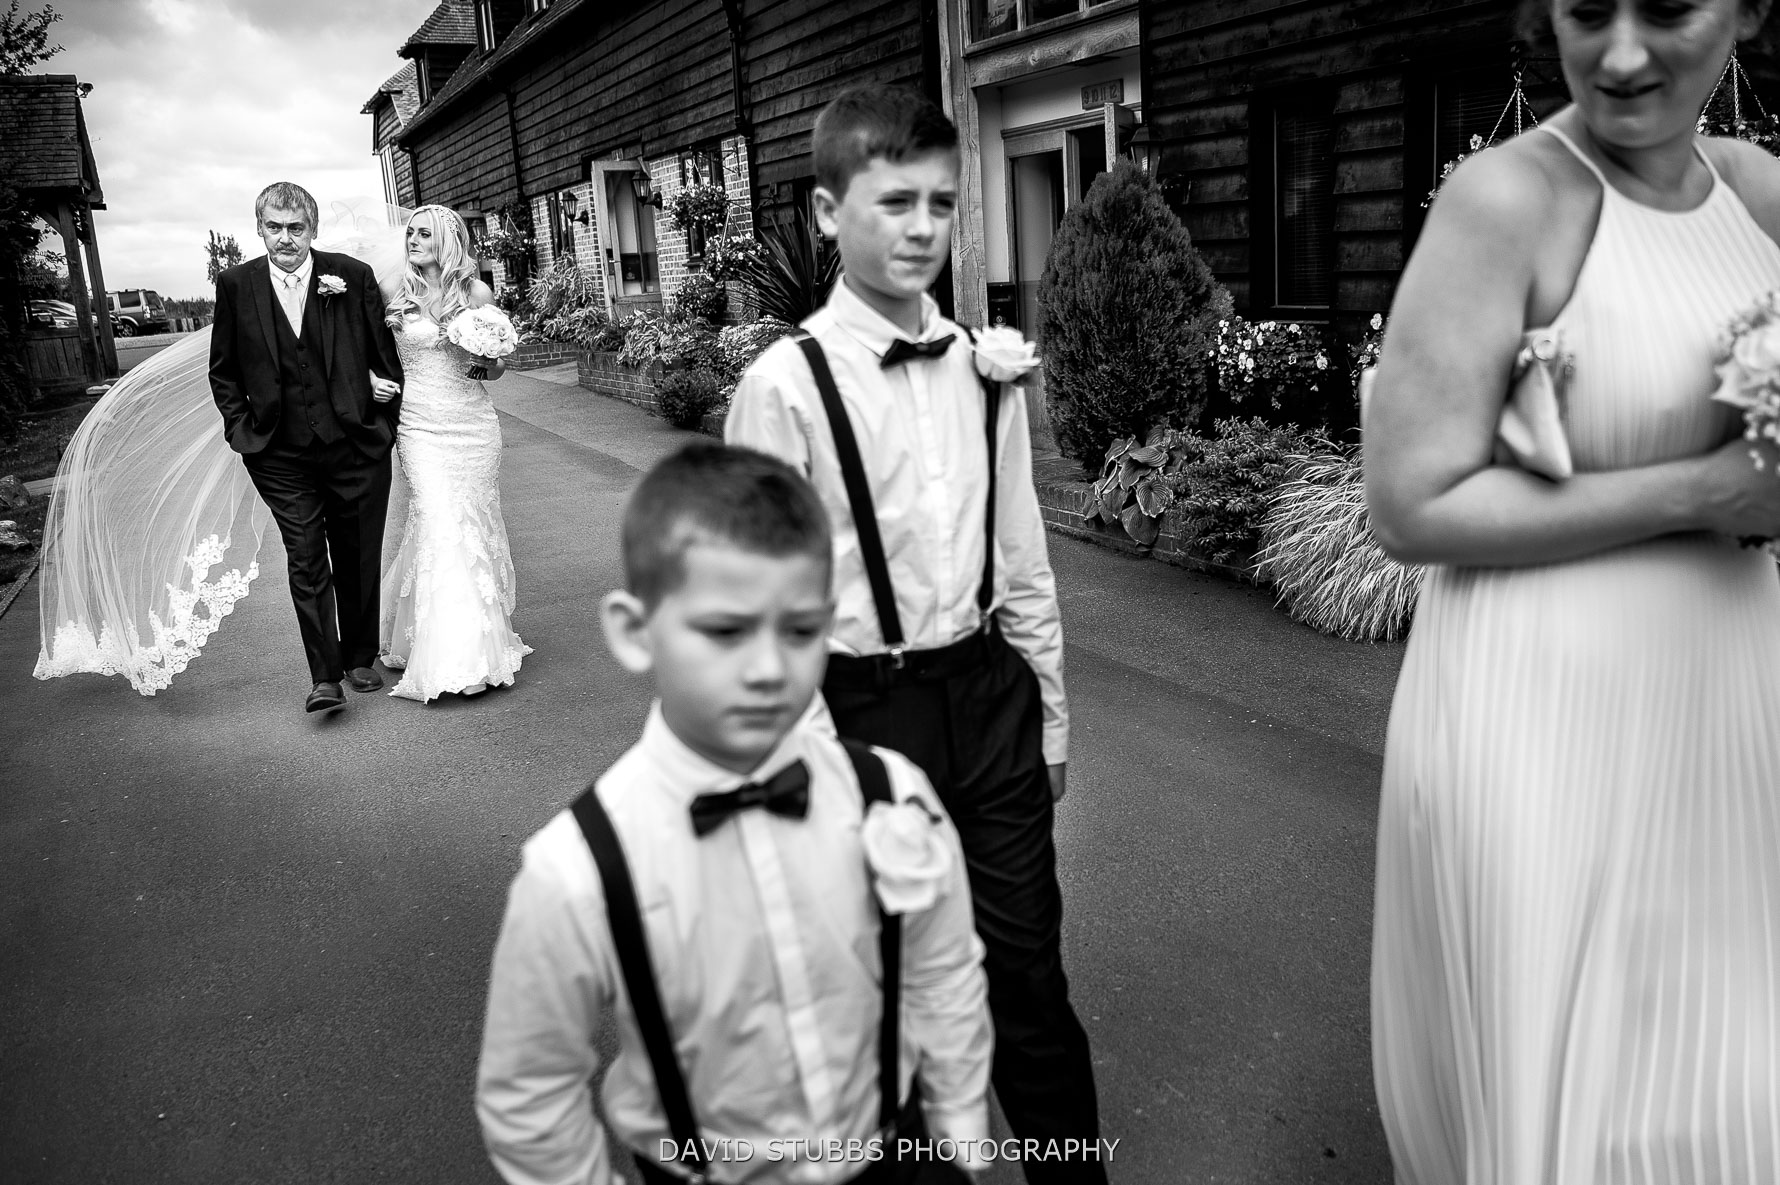 bride walking with her dad to be married